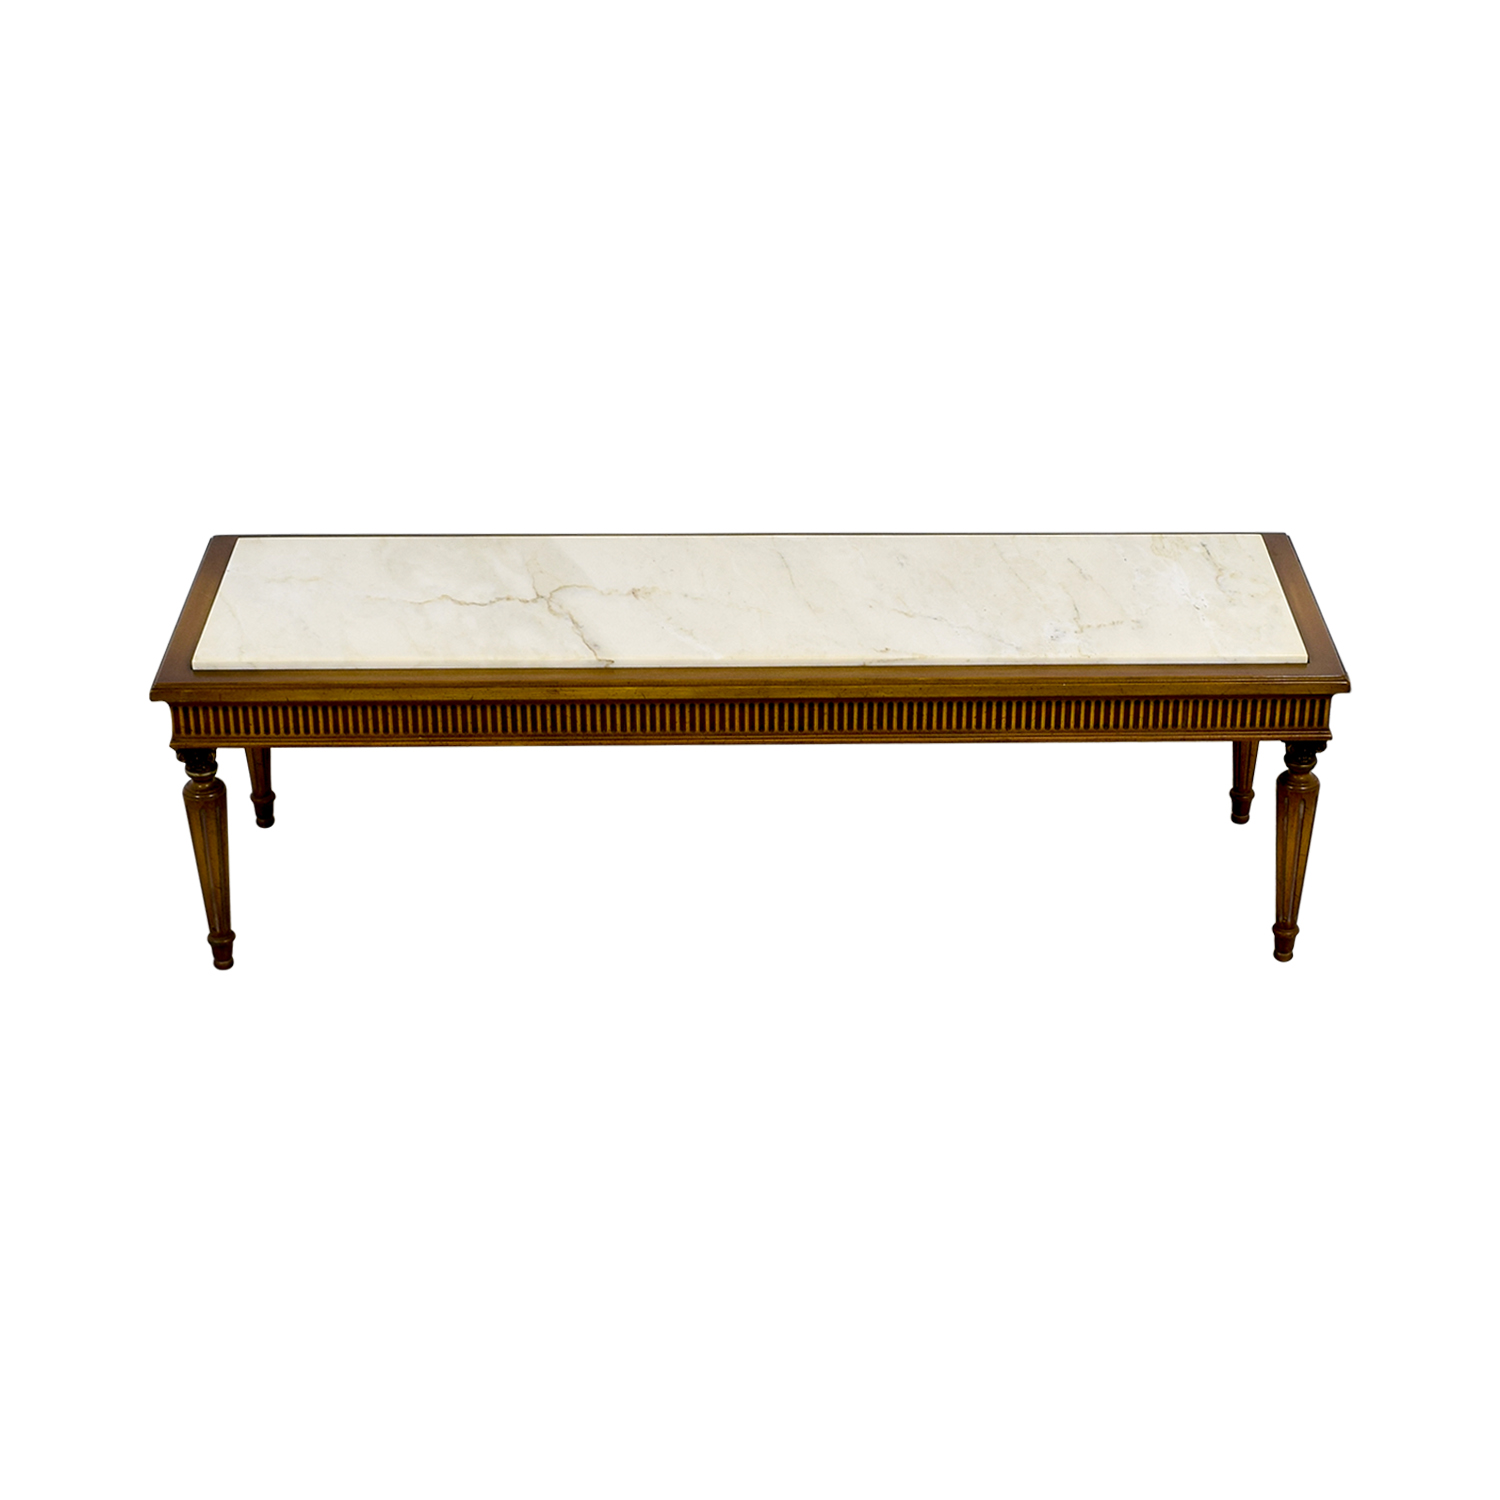 French Provincial Oval Coffee Table: Vintage Marble Topped French Provincial Coffee